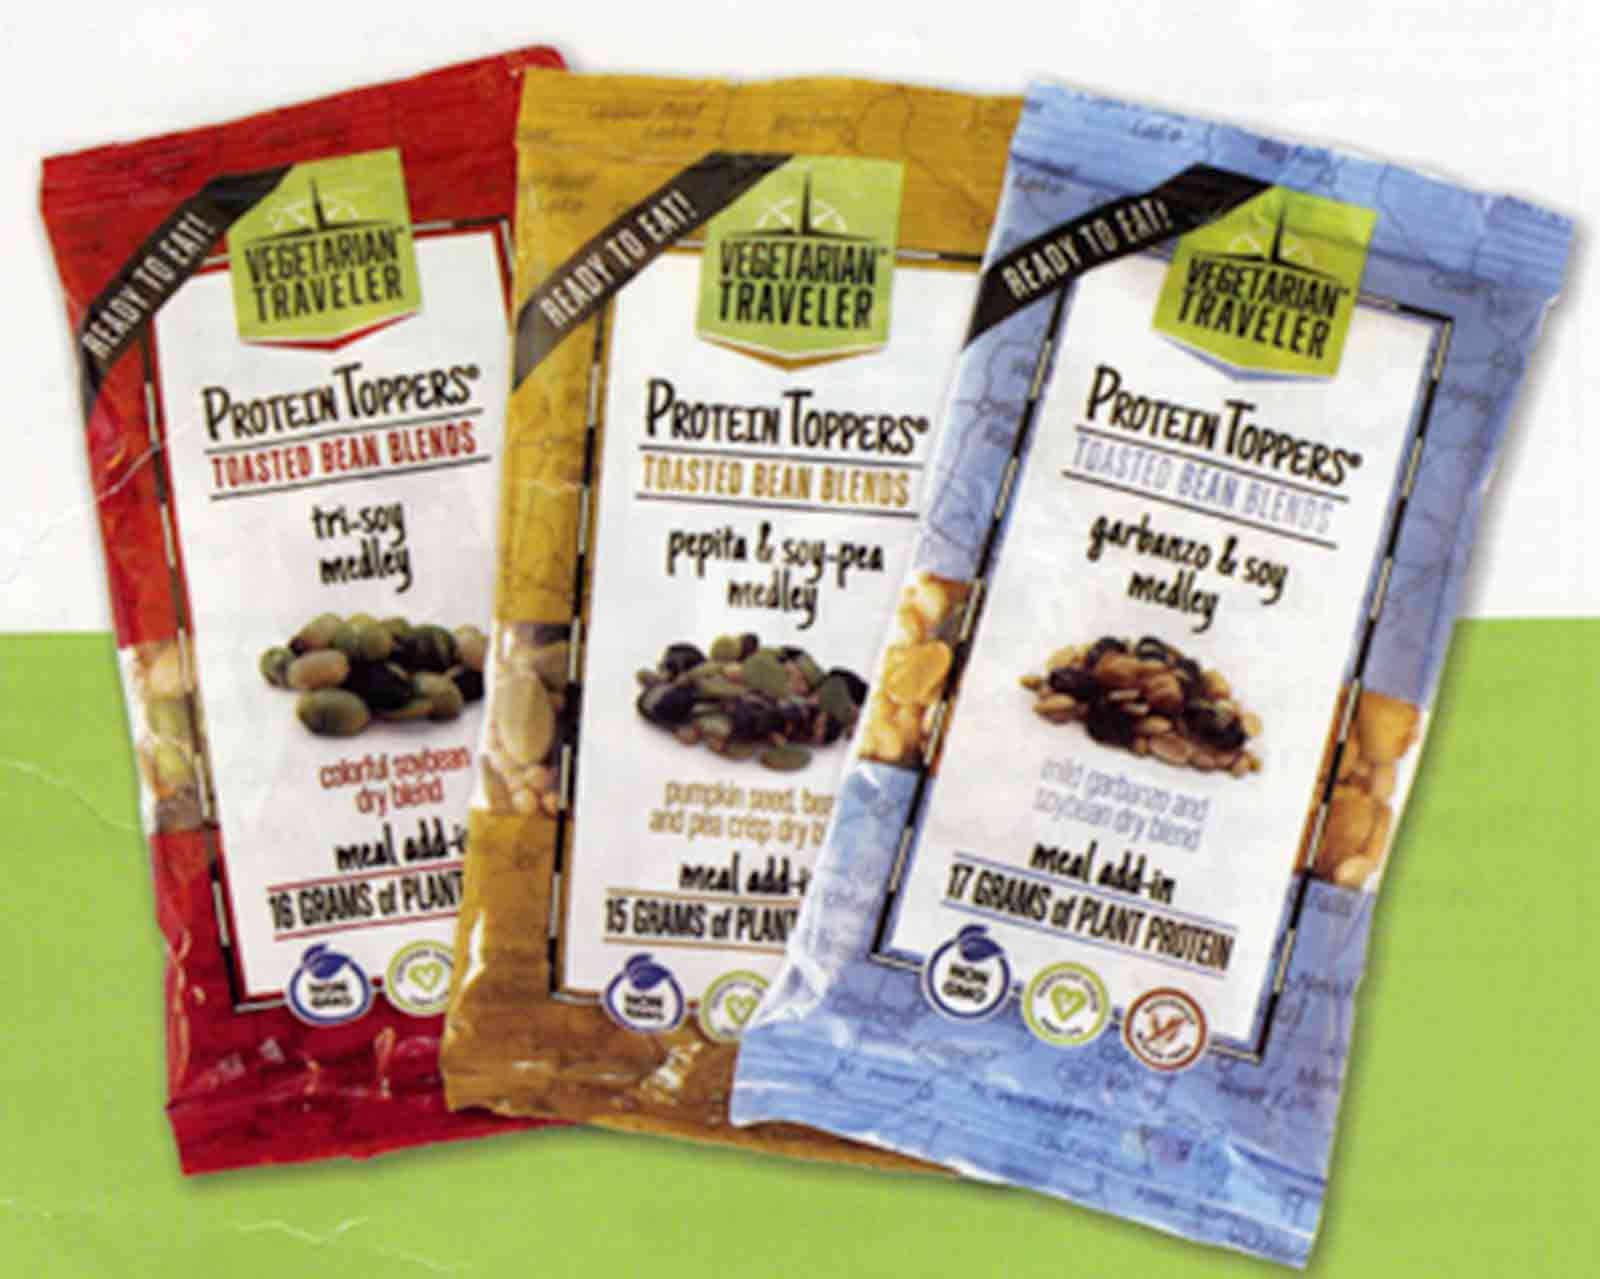 PROTEIN TOPPERS 2020 PROTEIN PRODUCTS